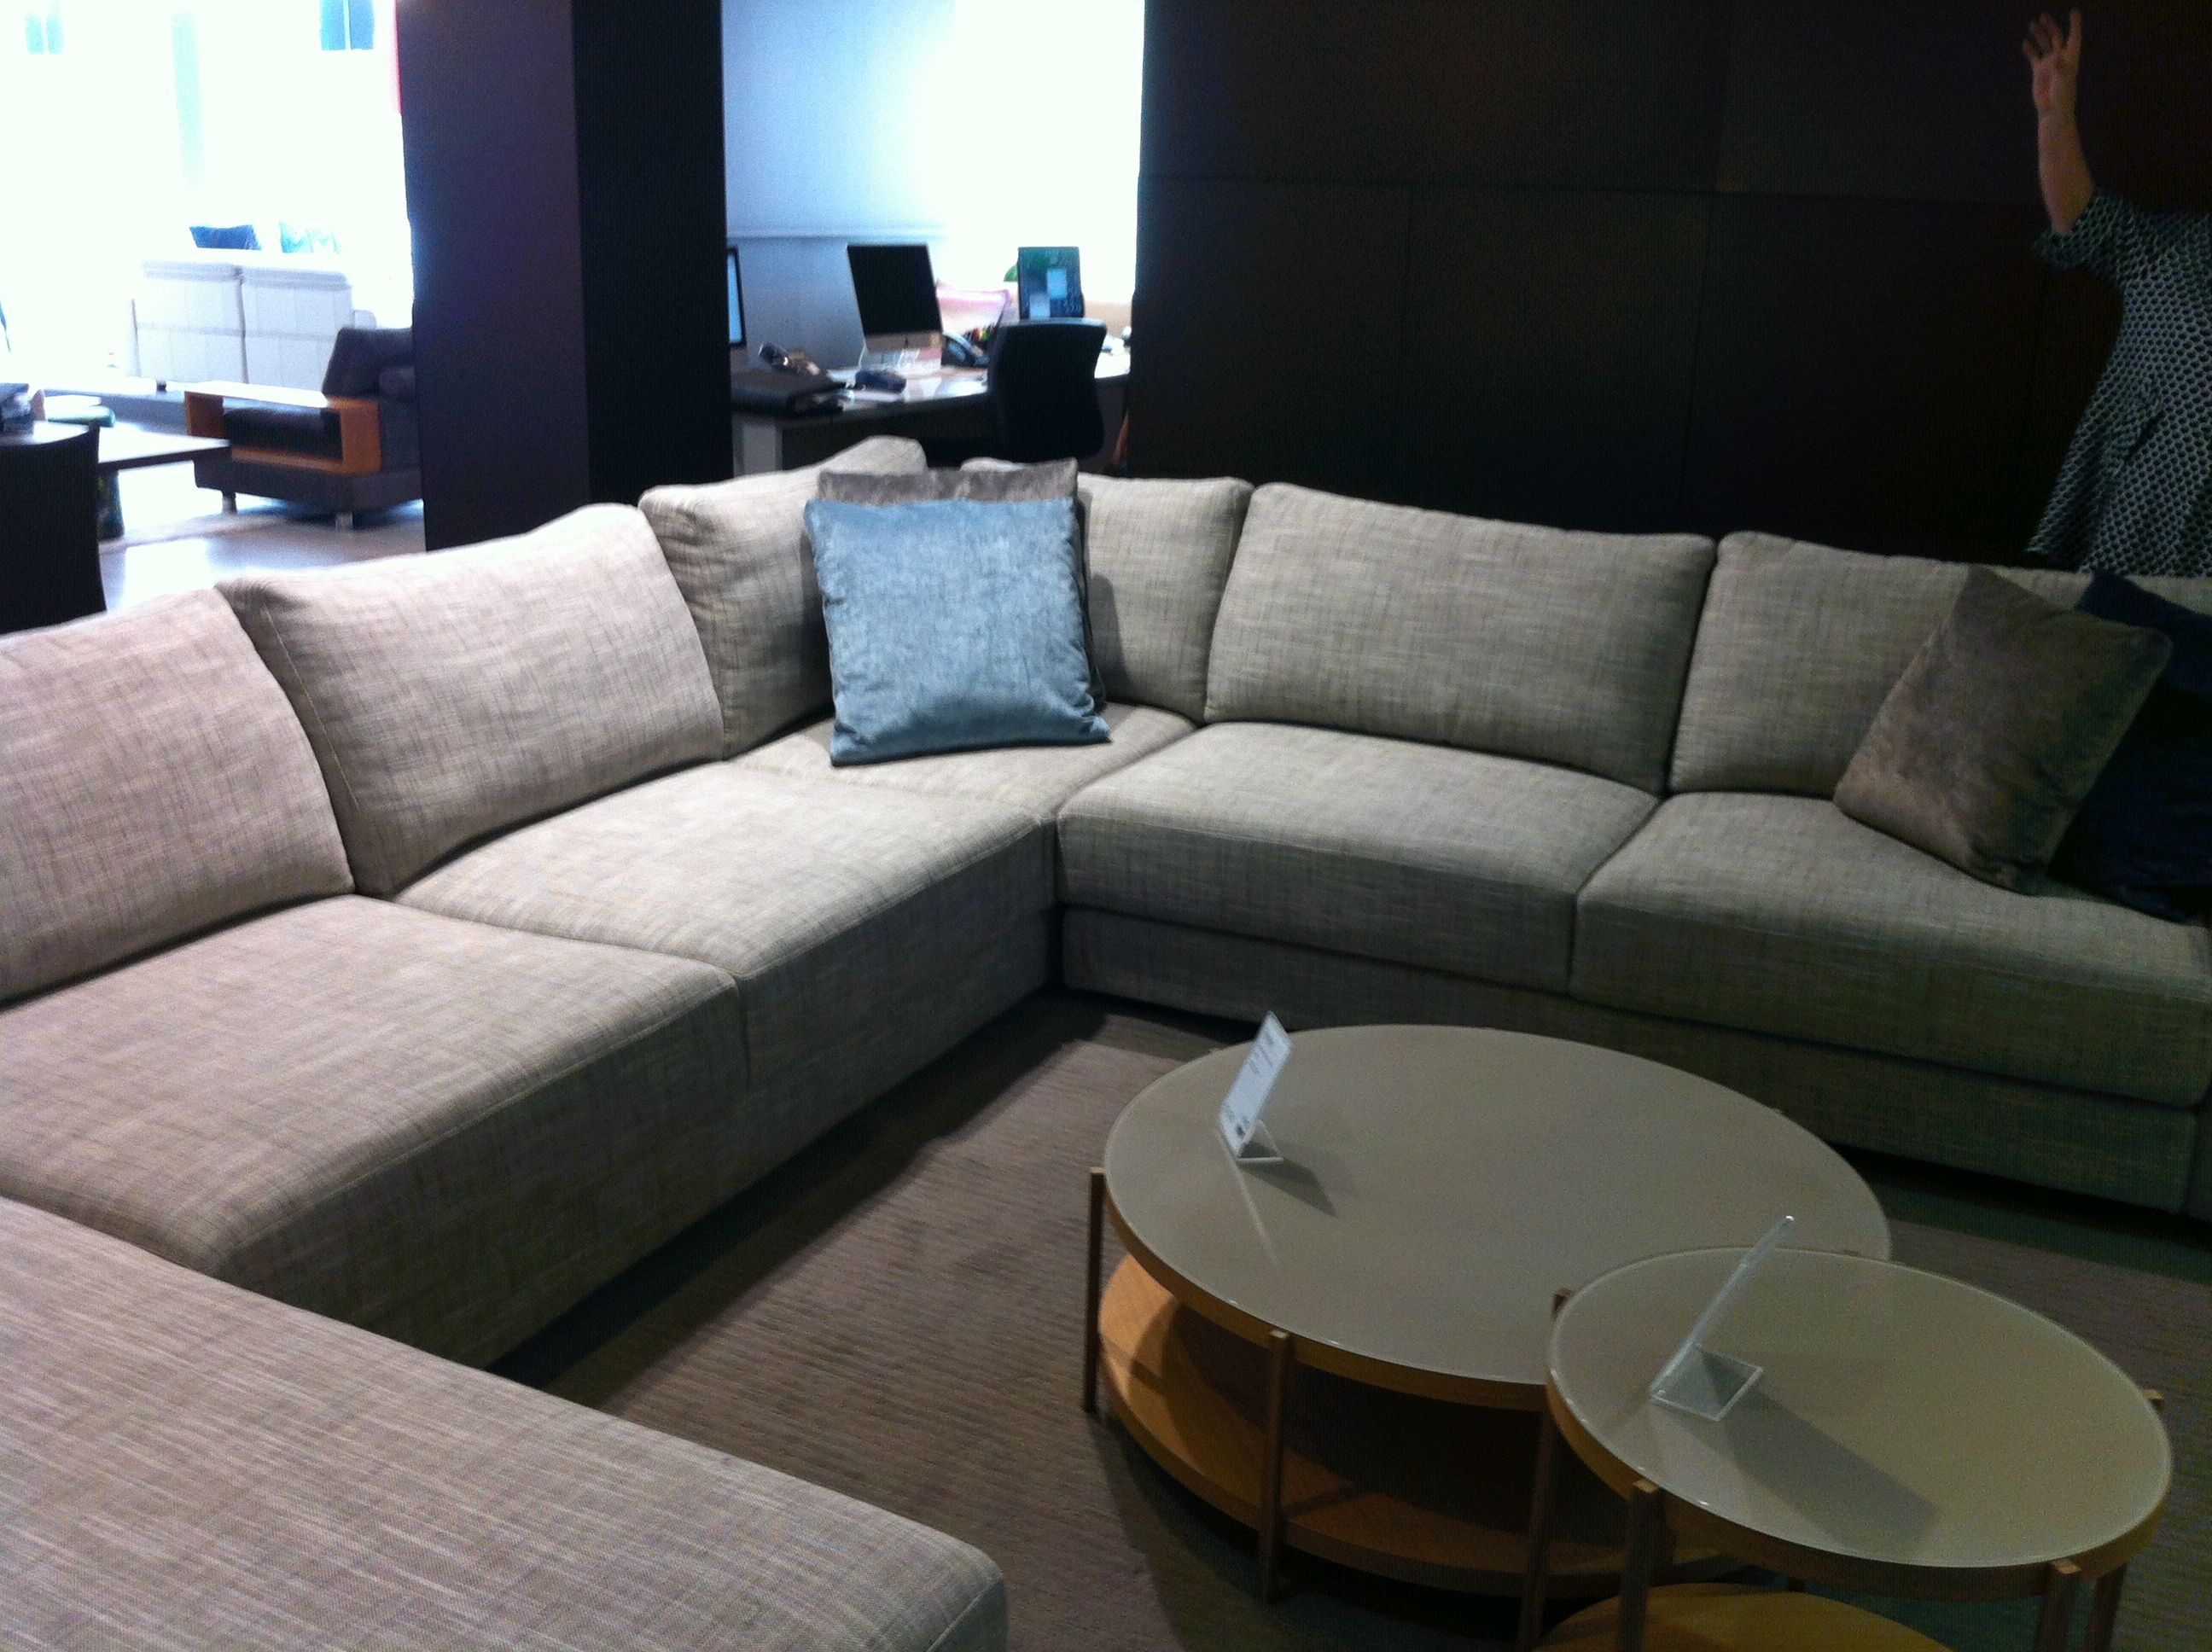 Concerto Modular Sofa At King But Prefer Plaza Living Room - Sofa king furniture